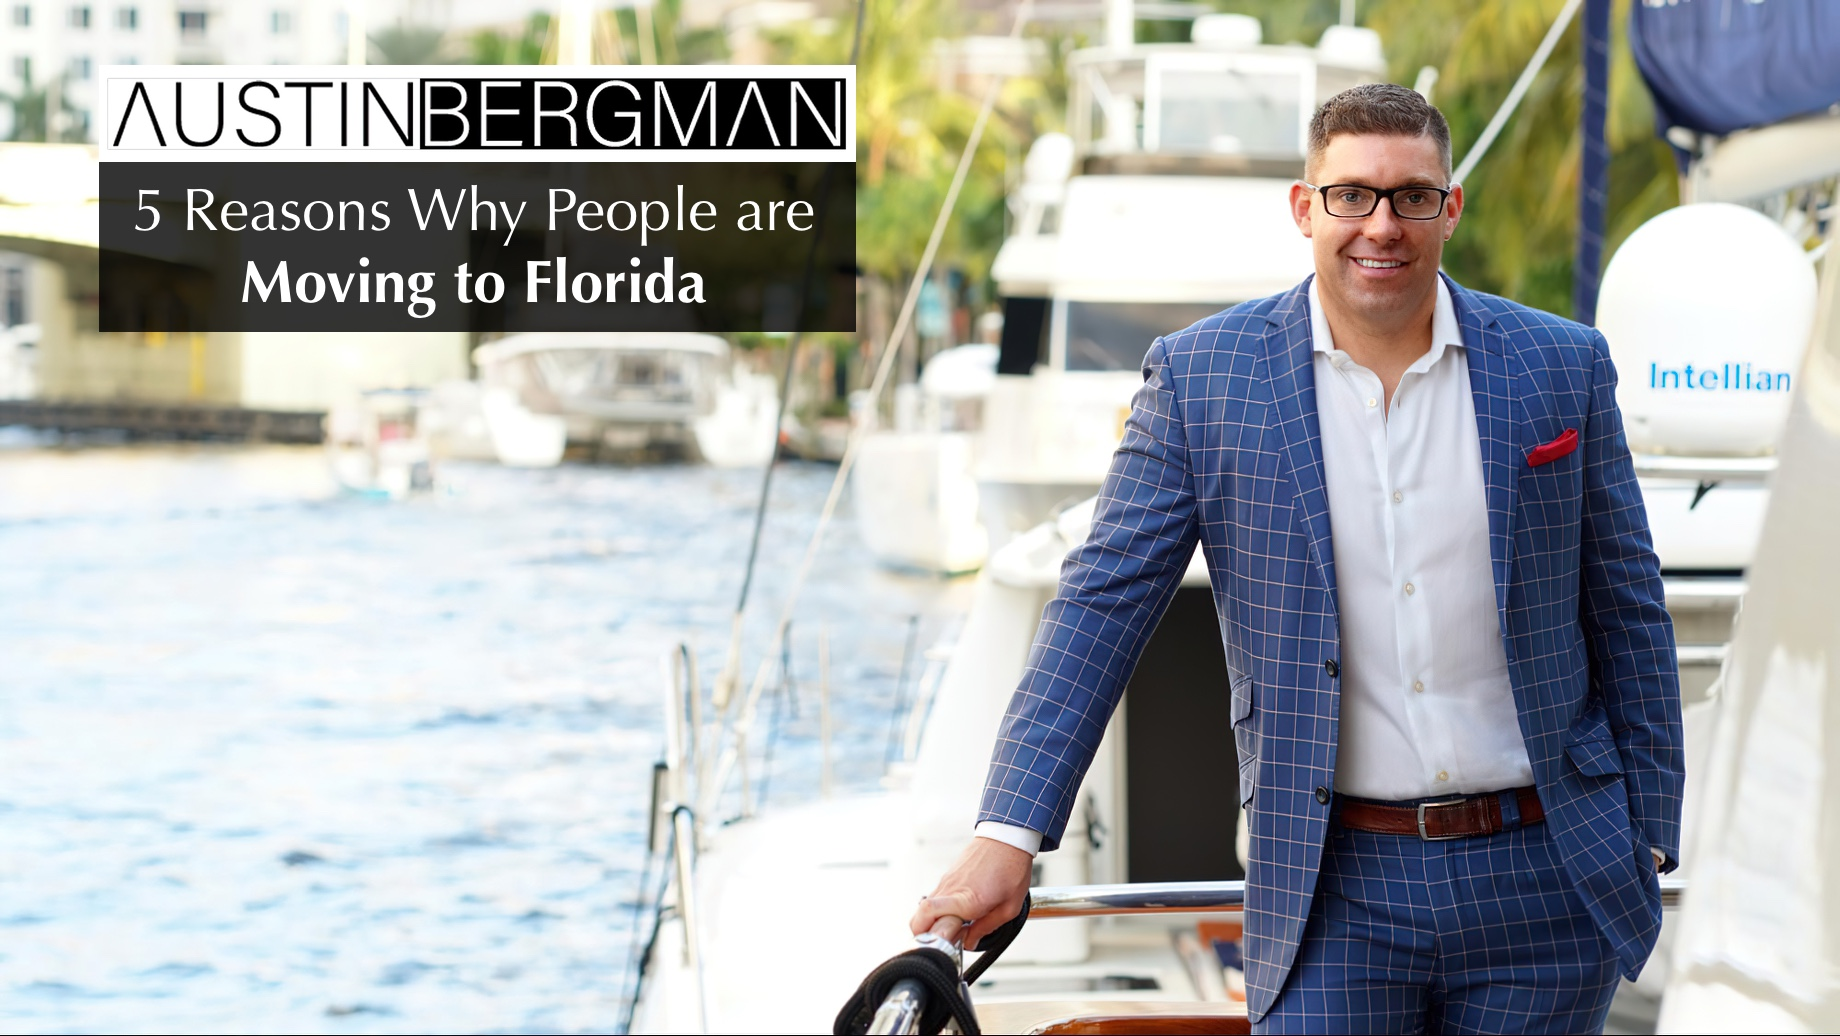 5 Reasons Why People are Moving to Florida - Austin Bergman of The Carroll Group